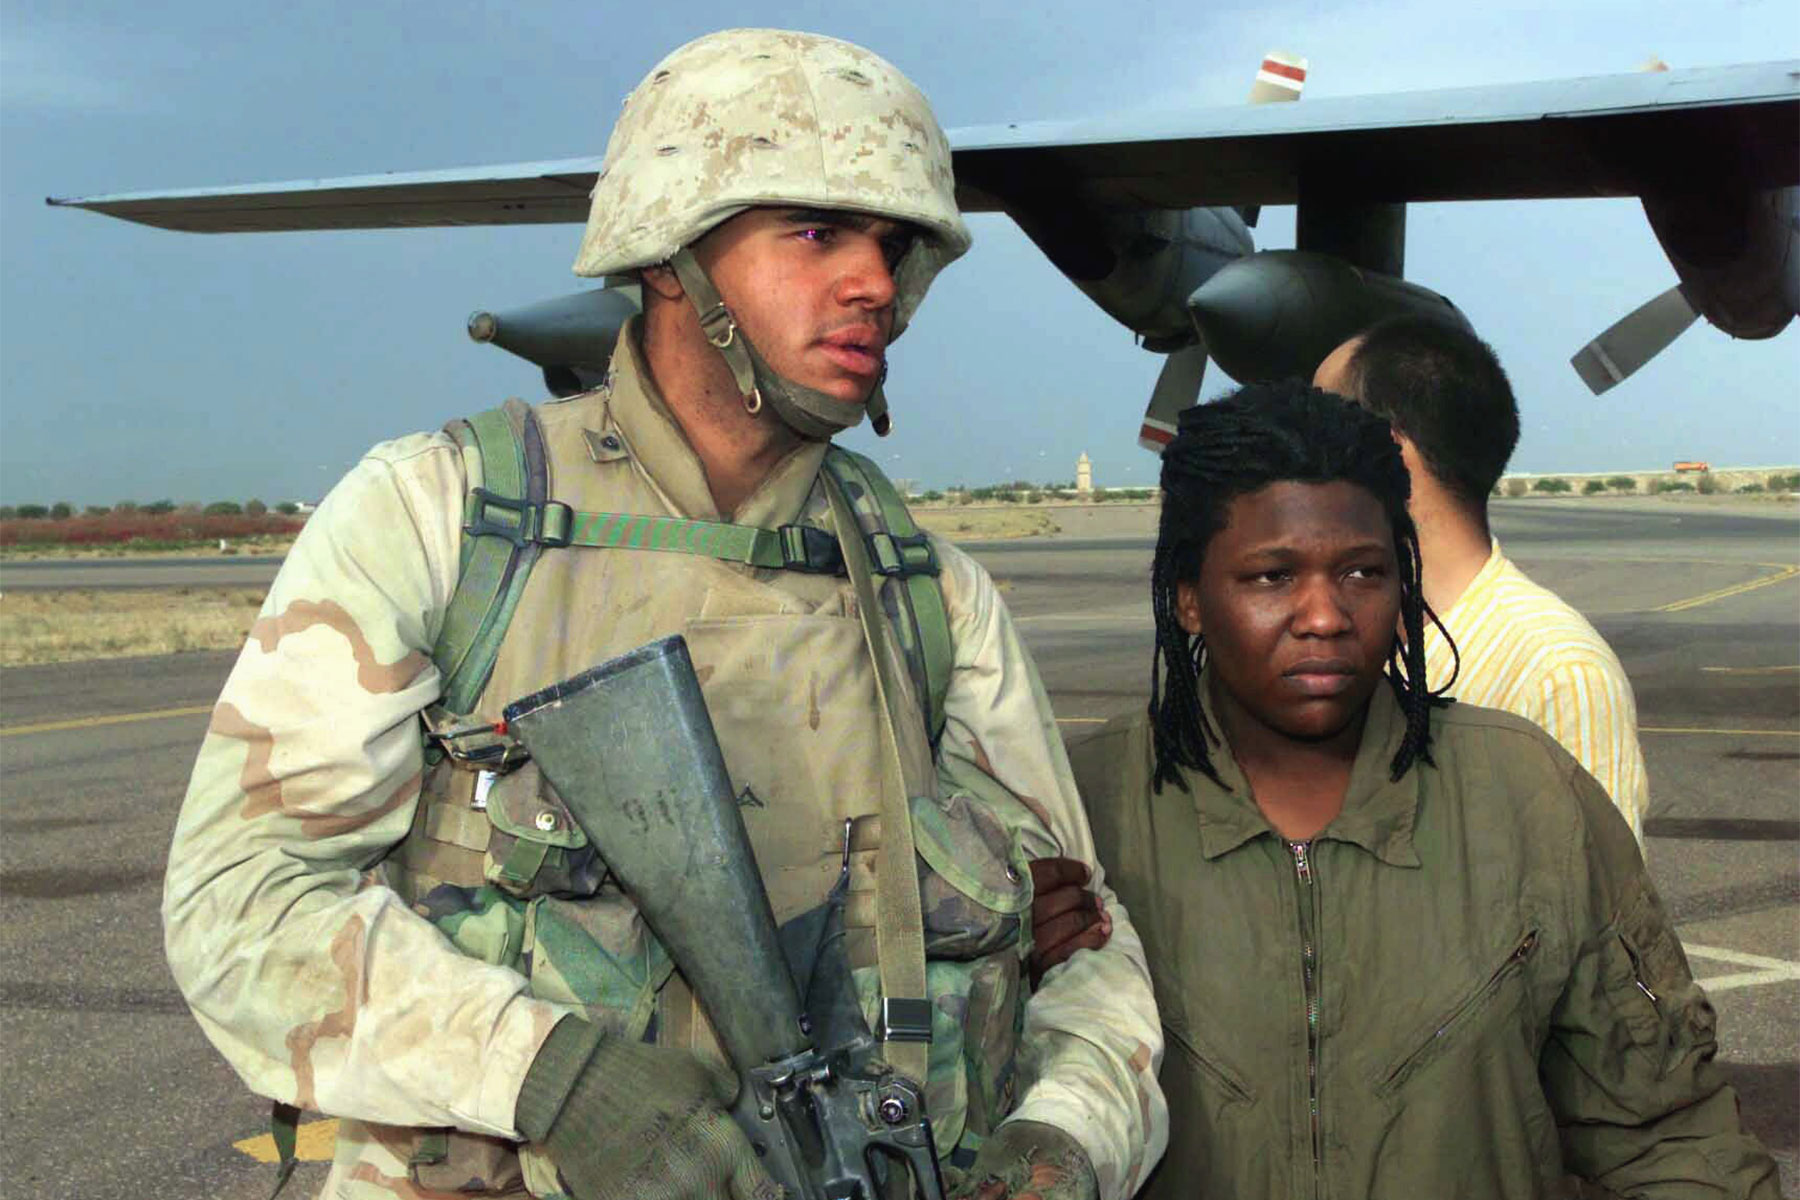 Lance Cpl. Curney Russell, from the 3rd Light Armored Reconnaissance Battalion, provides a steady arm for former prisoner of war Spc. Shoshana Johnson, with the 507th Maintenance Company, at Kuwait City, April 13, 2003, during Operation Iraqi Freedom. (U.S. Marine Corps/Michael Leitenberger)